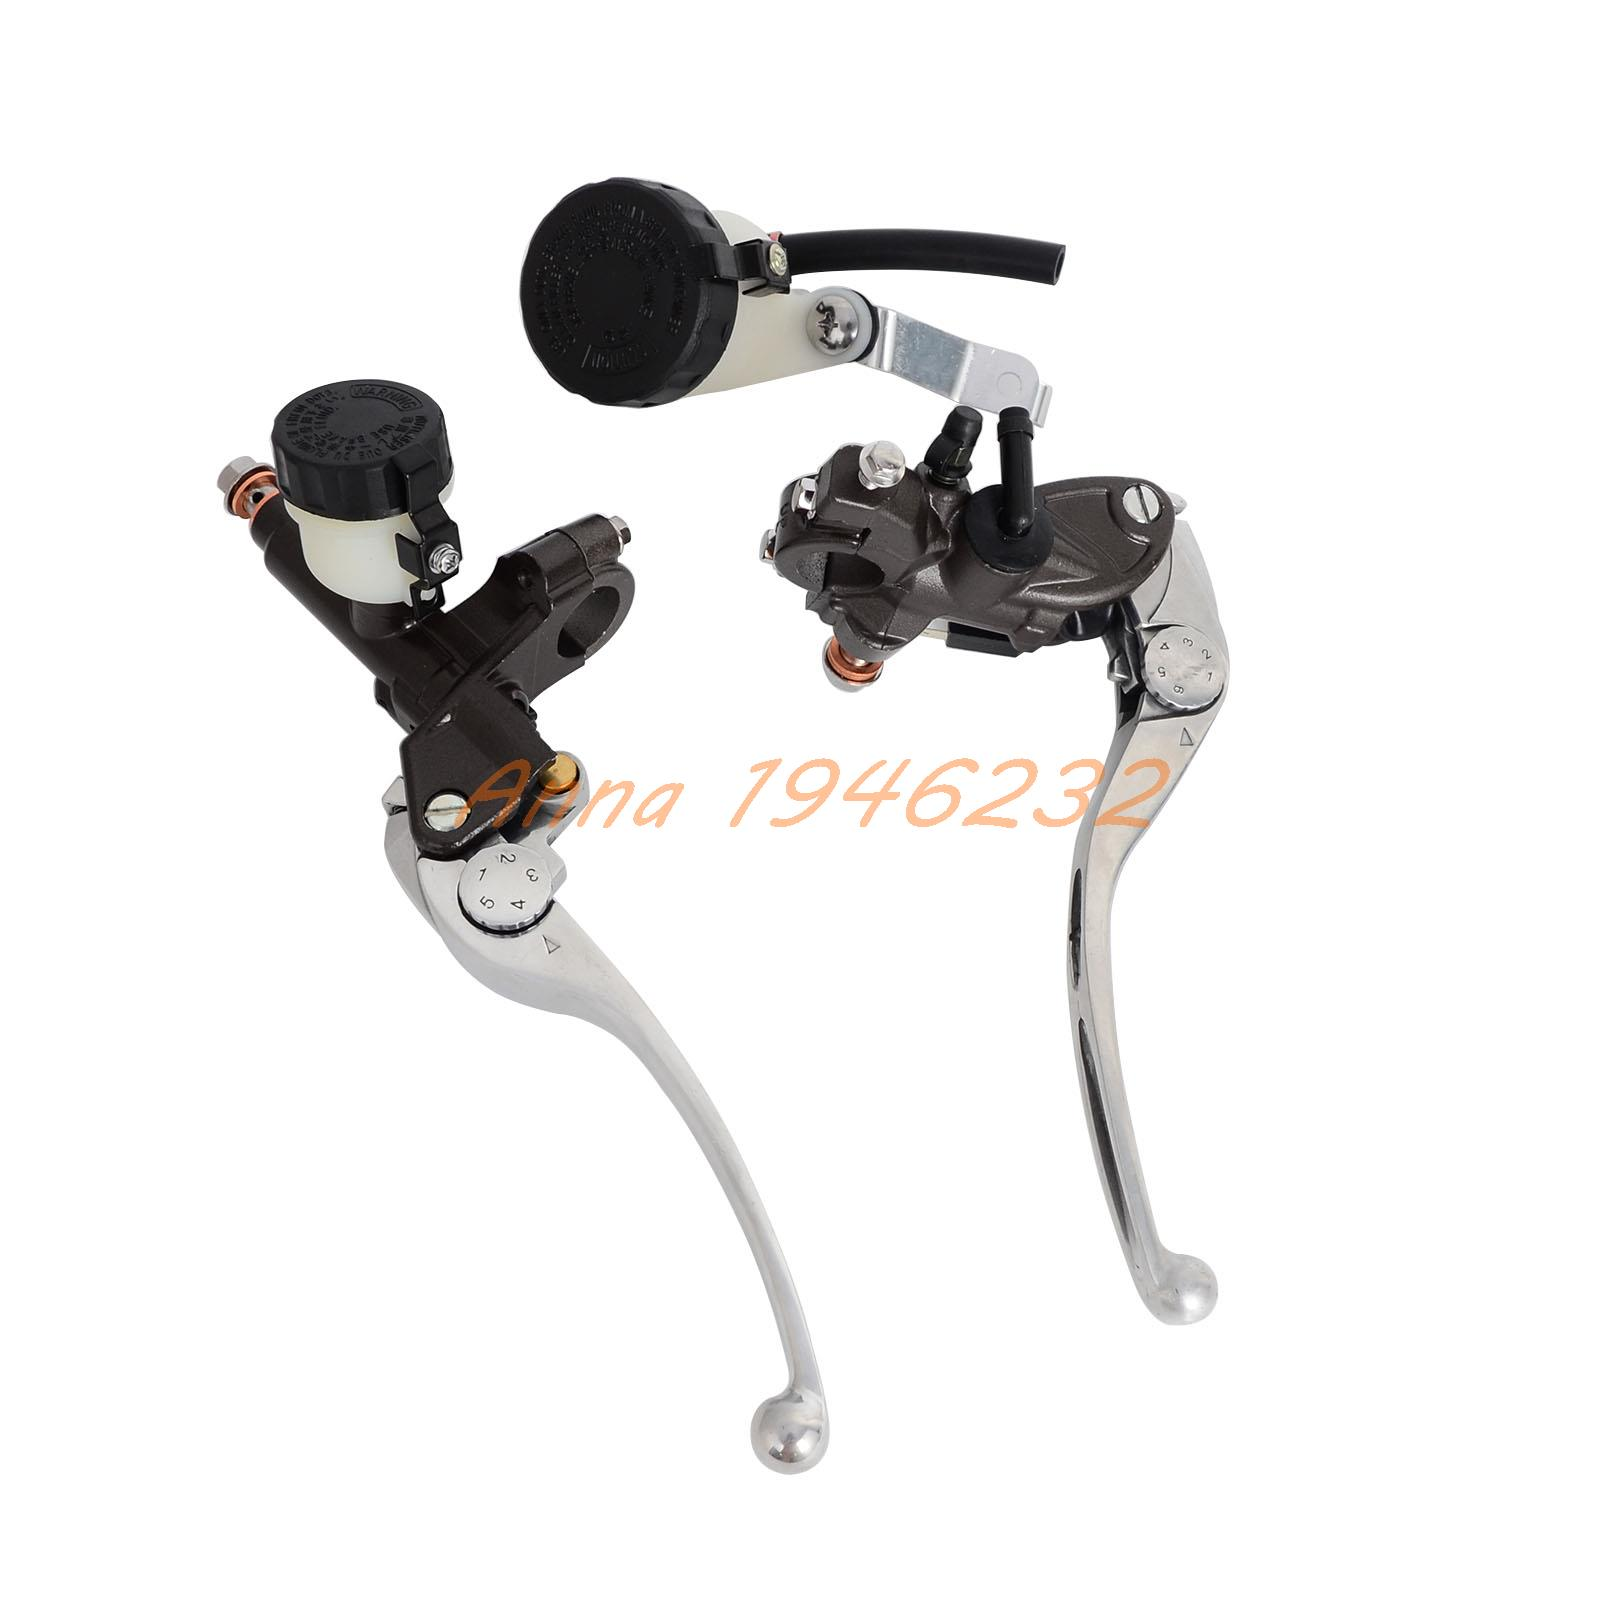 Master Cylinder Brake Clutch Lever For Honda CBR1000RR 2004 2005 2006 2007 aftermarket free shipping motorcycle parts brake clutch hand lever for honda cbr1000rr cbr 1000 2004 2005 2006 2007 carbon